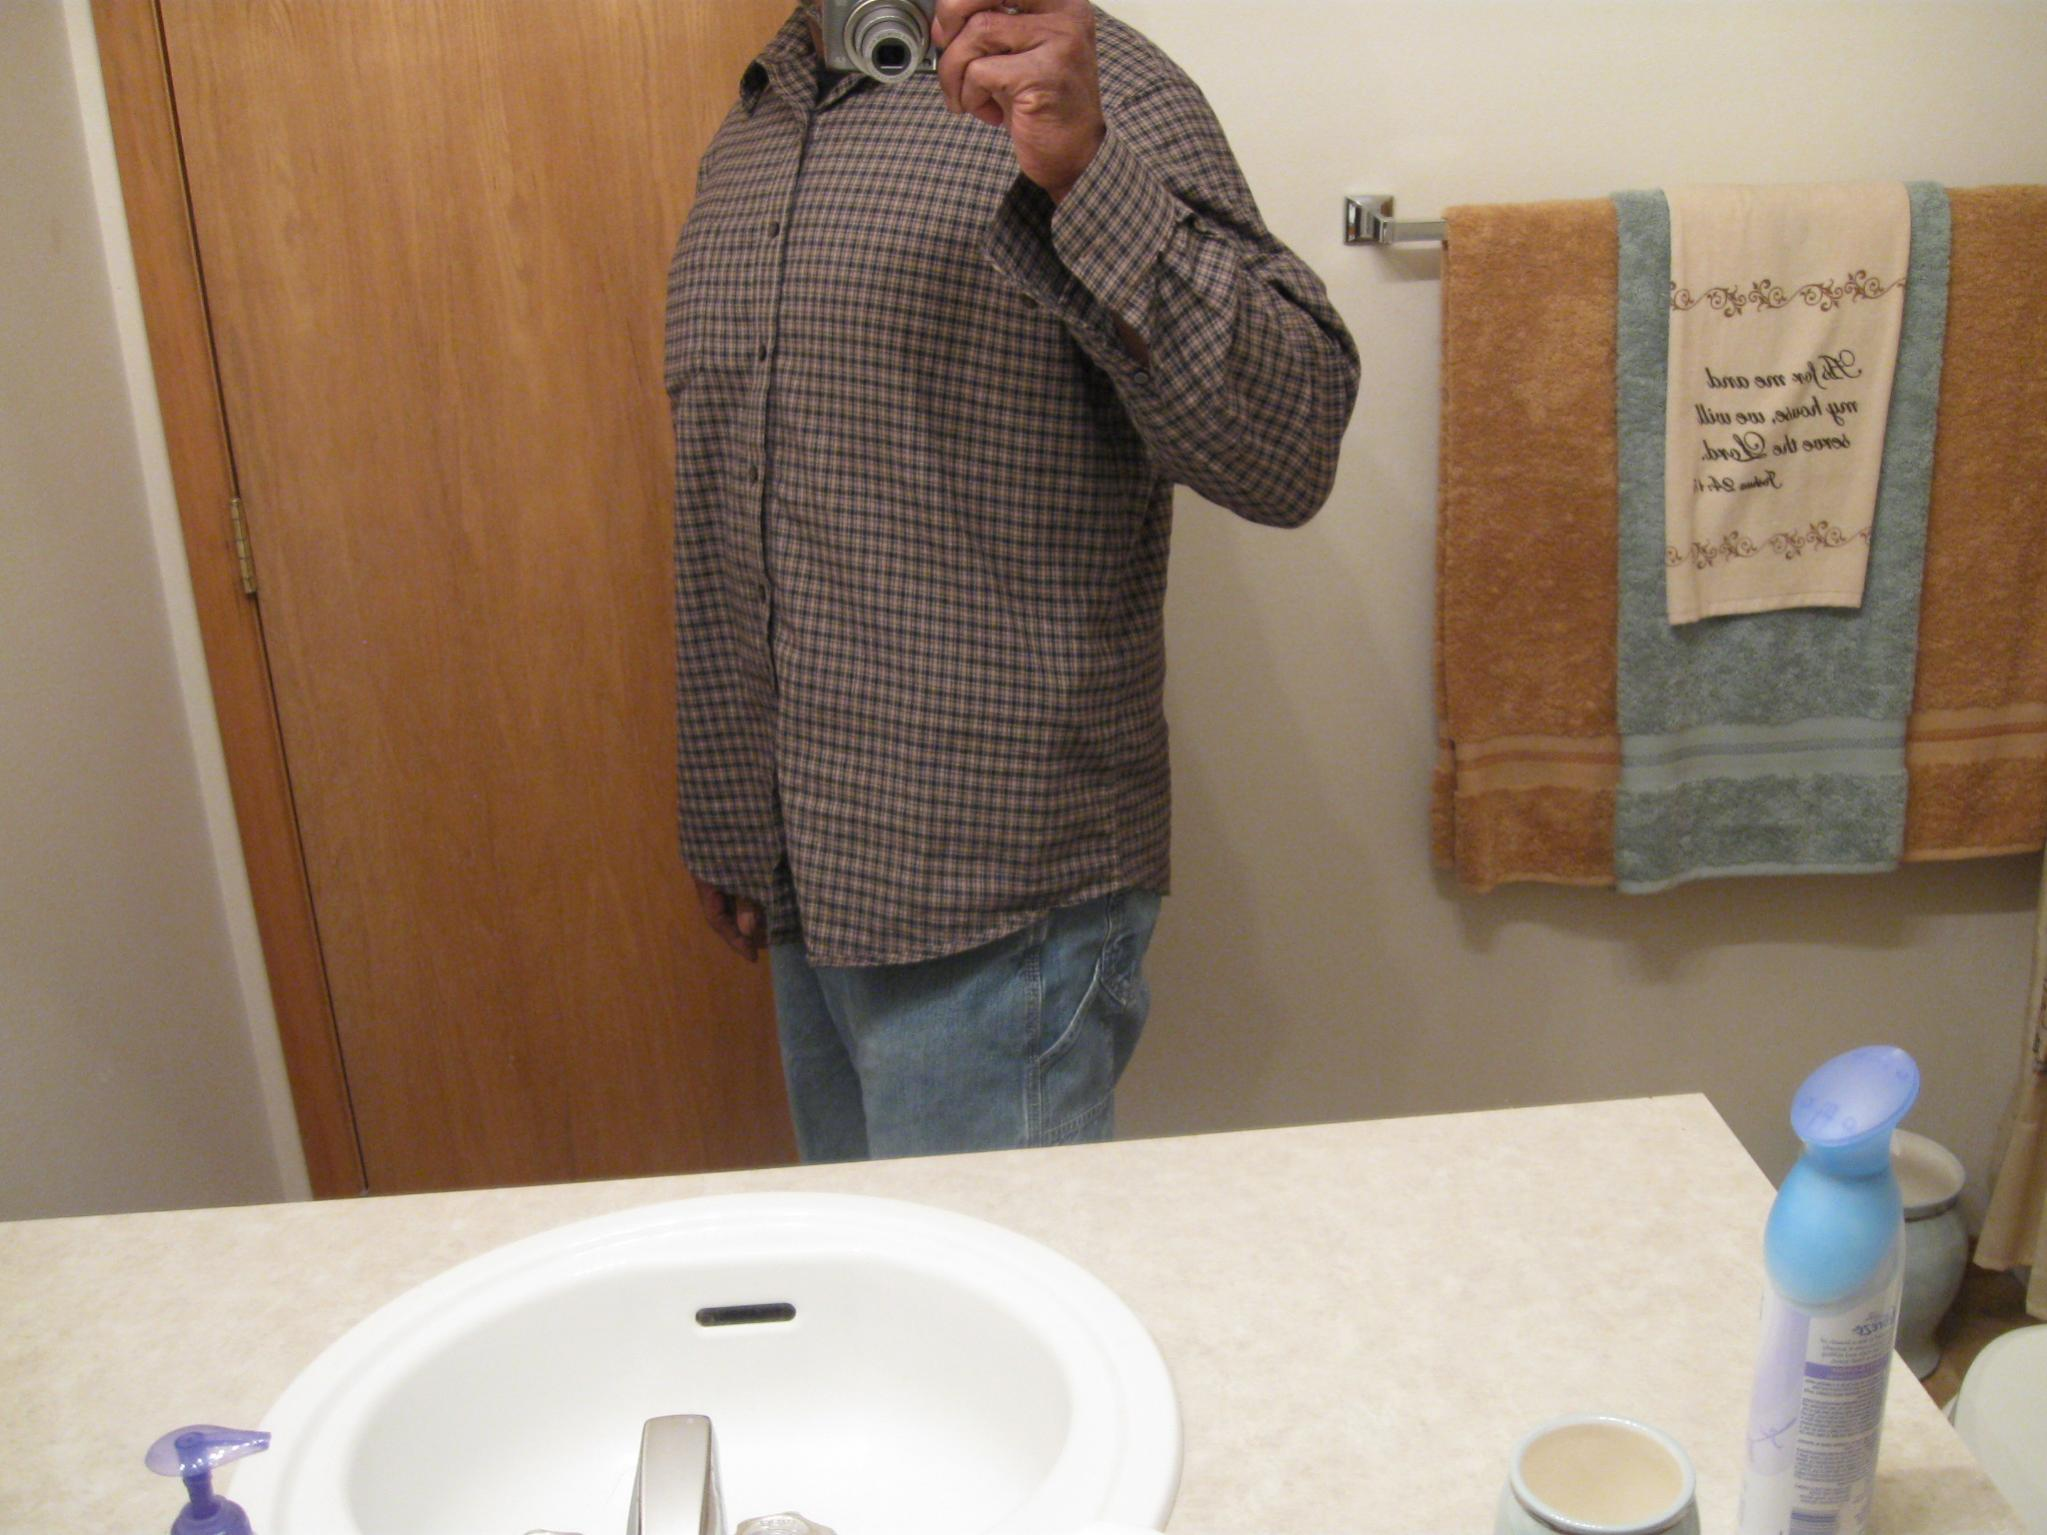 How to make more comfortable for EDC?-owb-holsters-carry-017.jpg